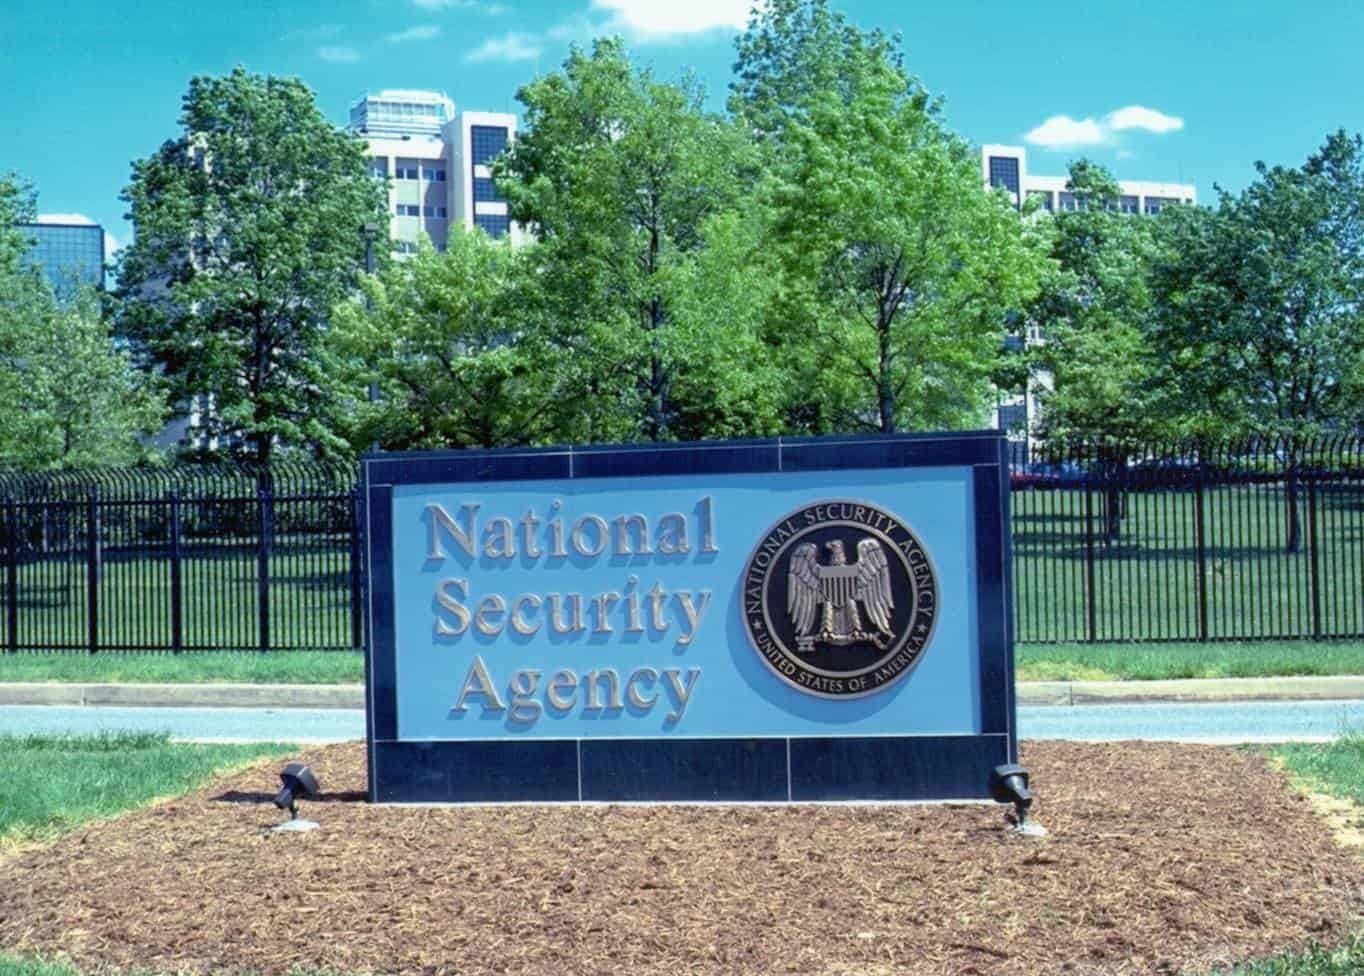 National-Security-Agency-sign